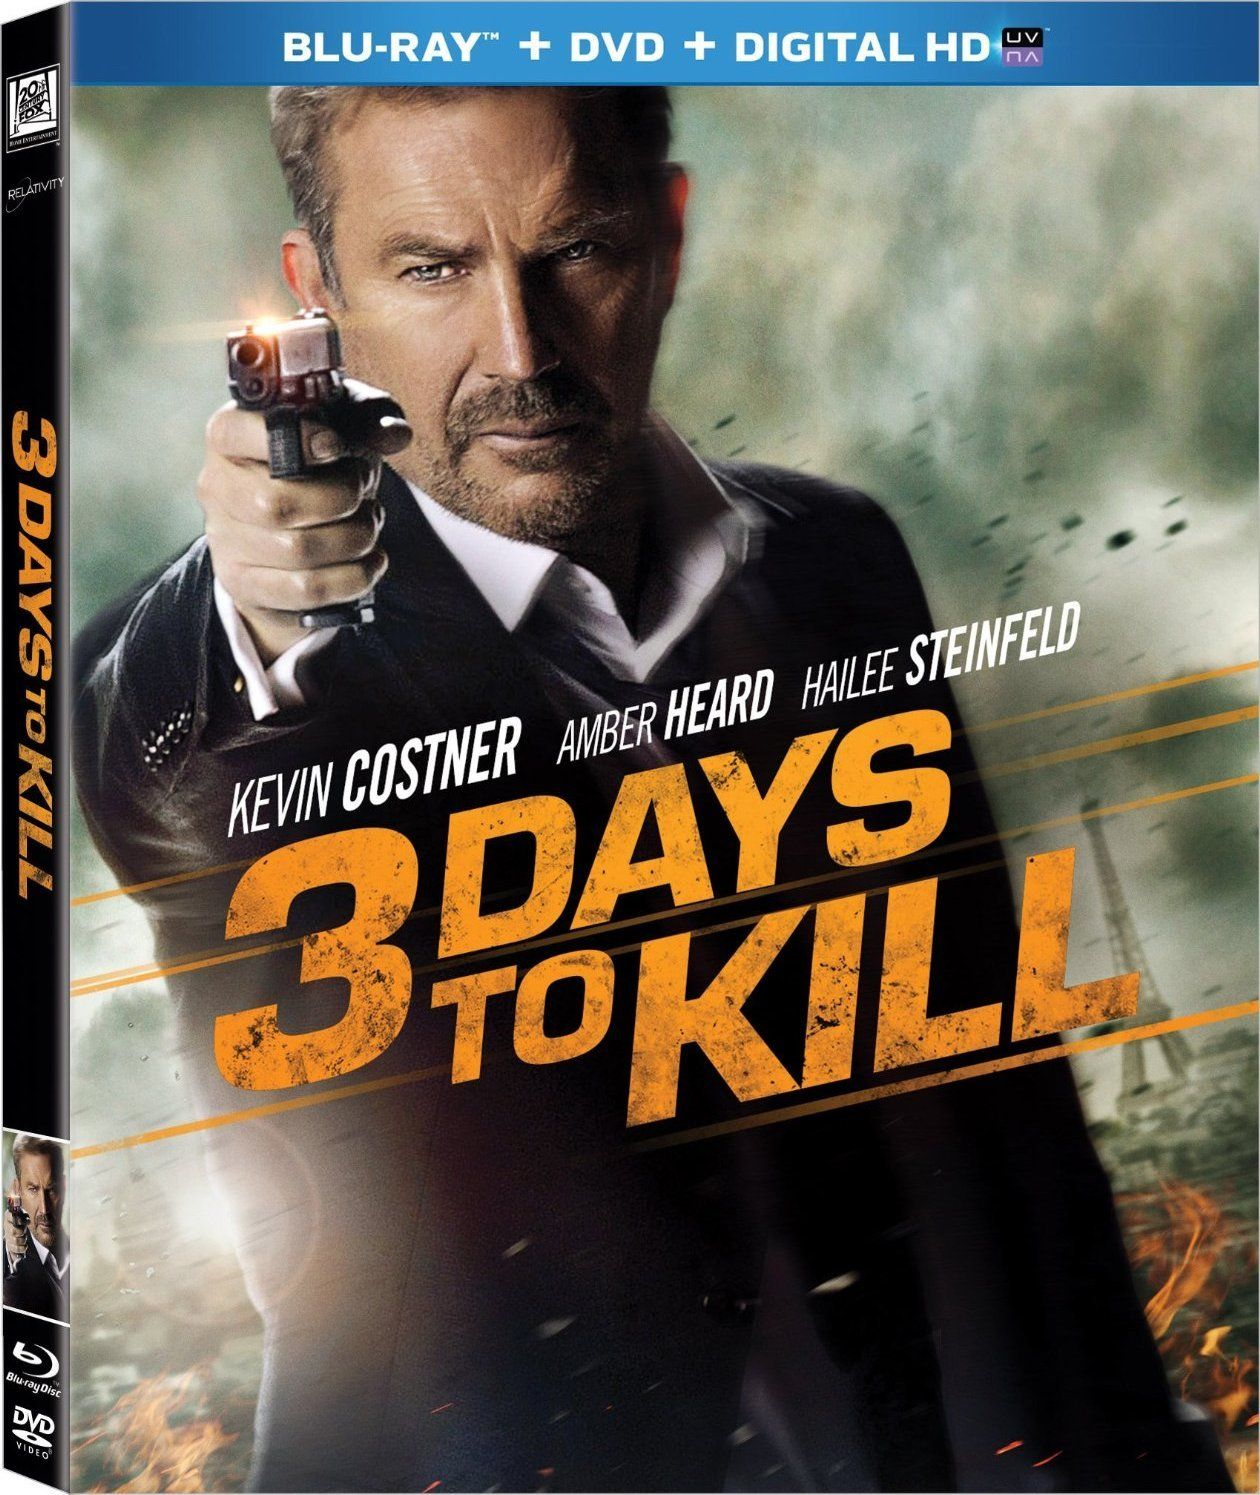 3 Days to Kill Bluray Release Date May 20, 2014 (Bluray